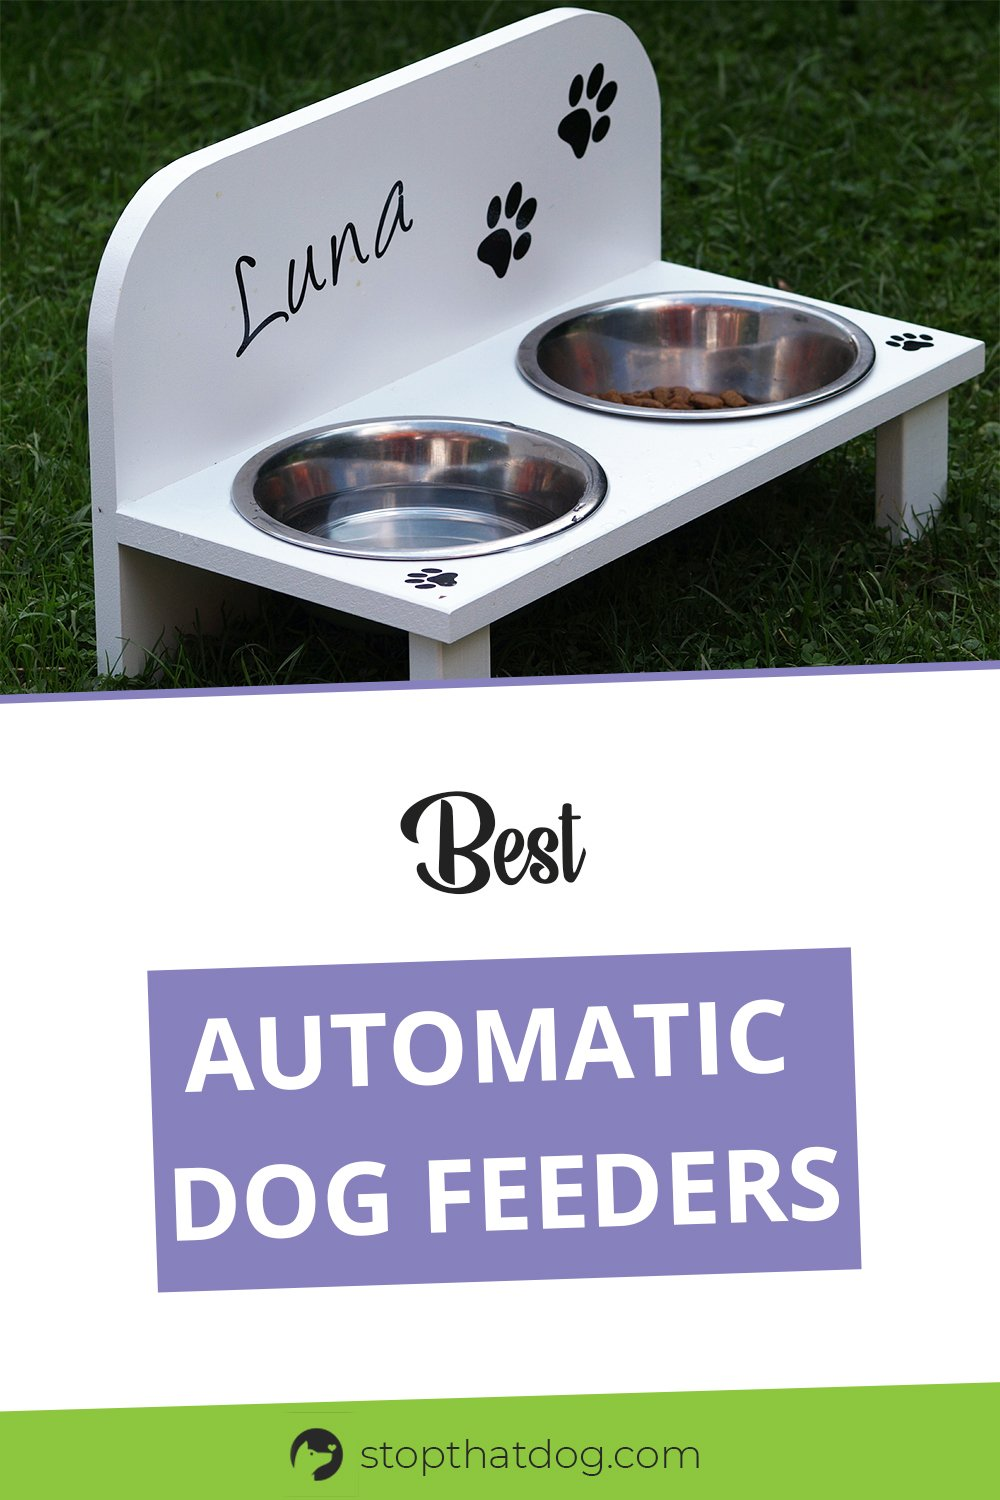 Thinking of buying an automatic dog feeder? If so, this guide reveals the top options on the market. Make sure you buy the right one for your dog.